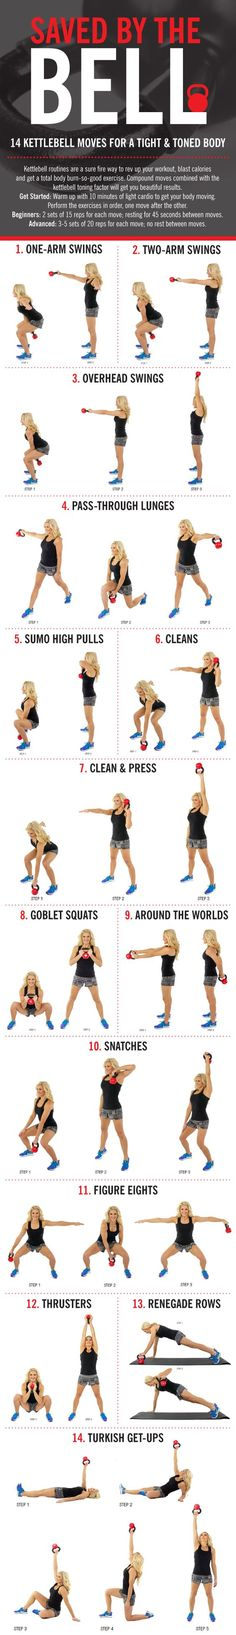 Get a tight and toned body with these moves.: | Posted By: CustomWeightLossProgram.com